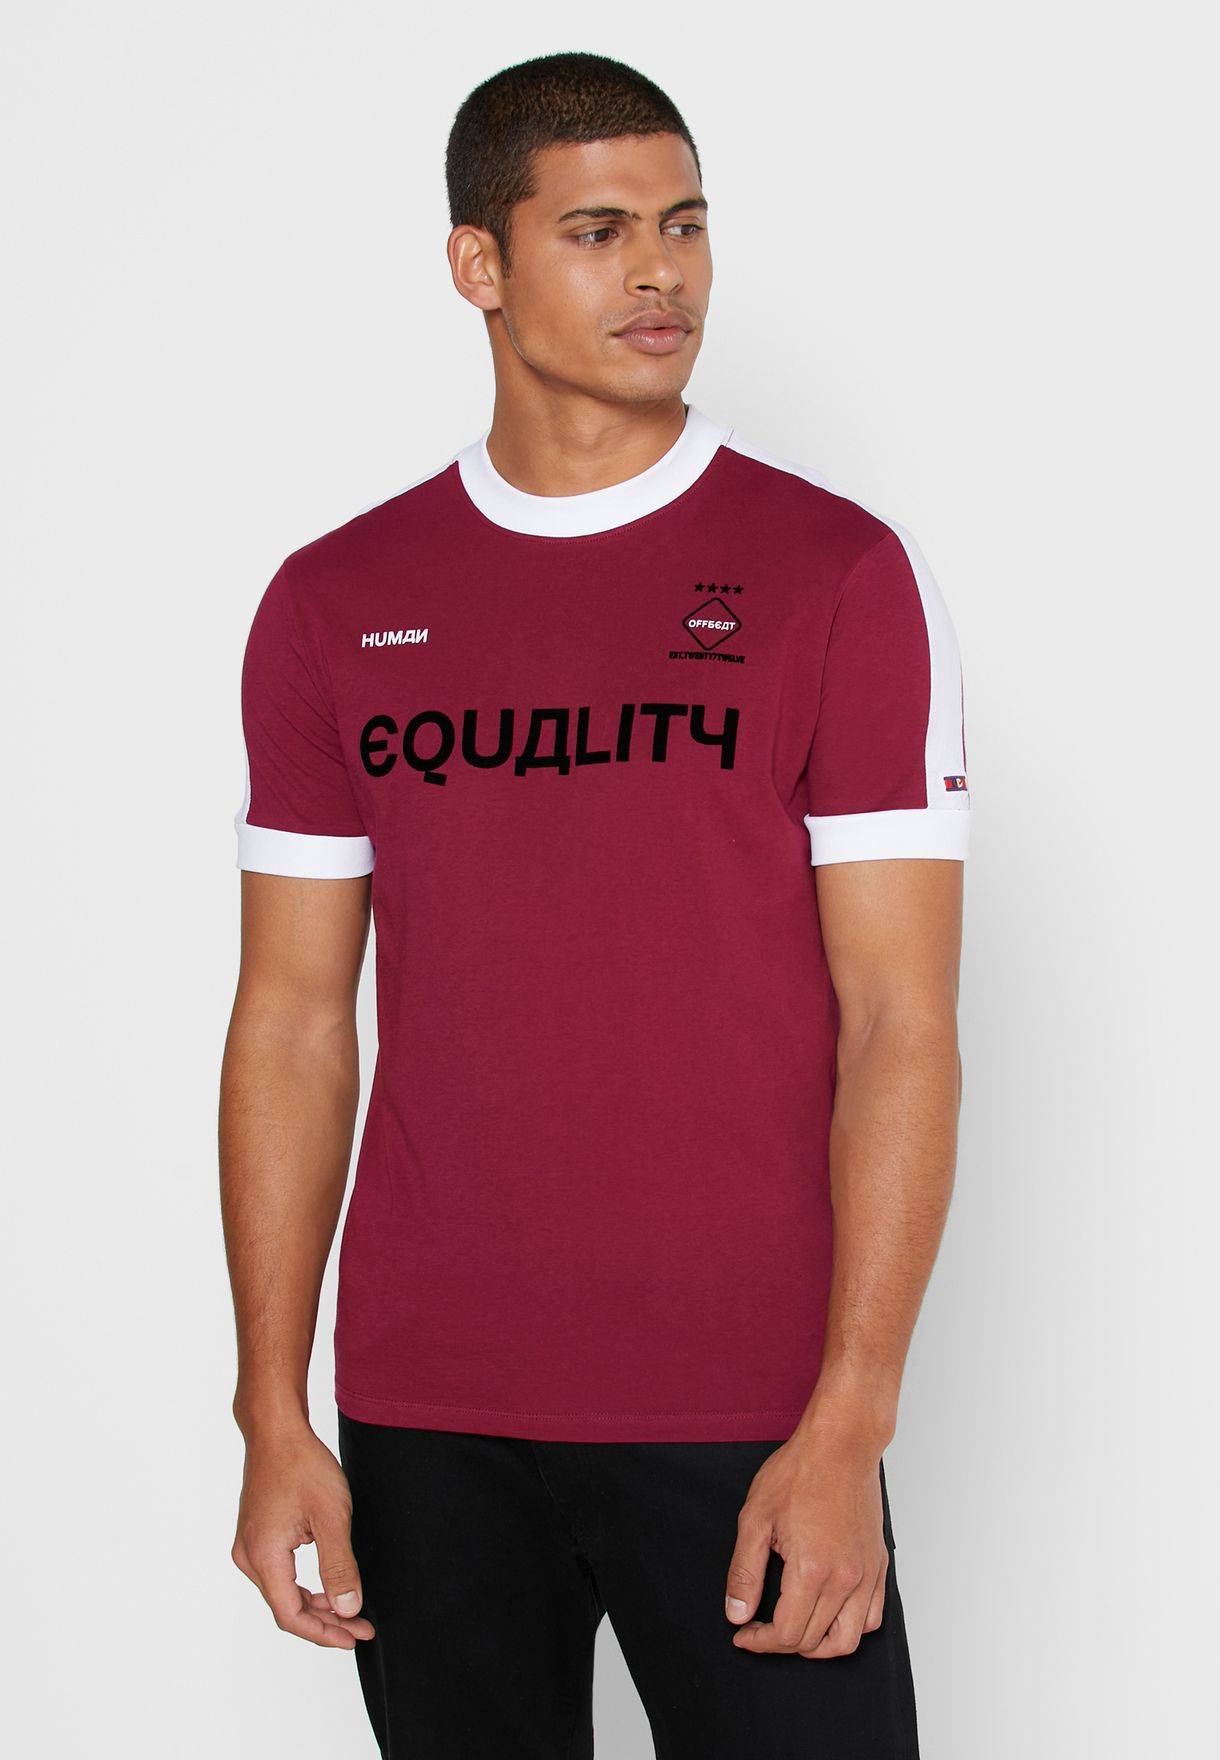 Equality Crew Neck T-Shirt